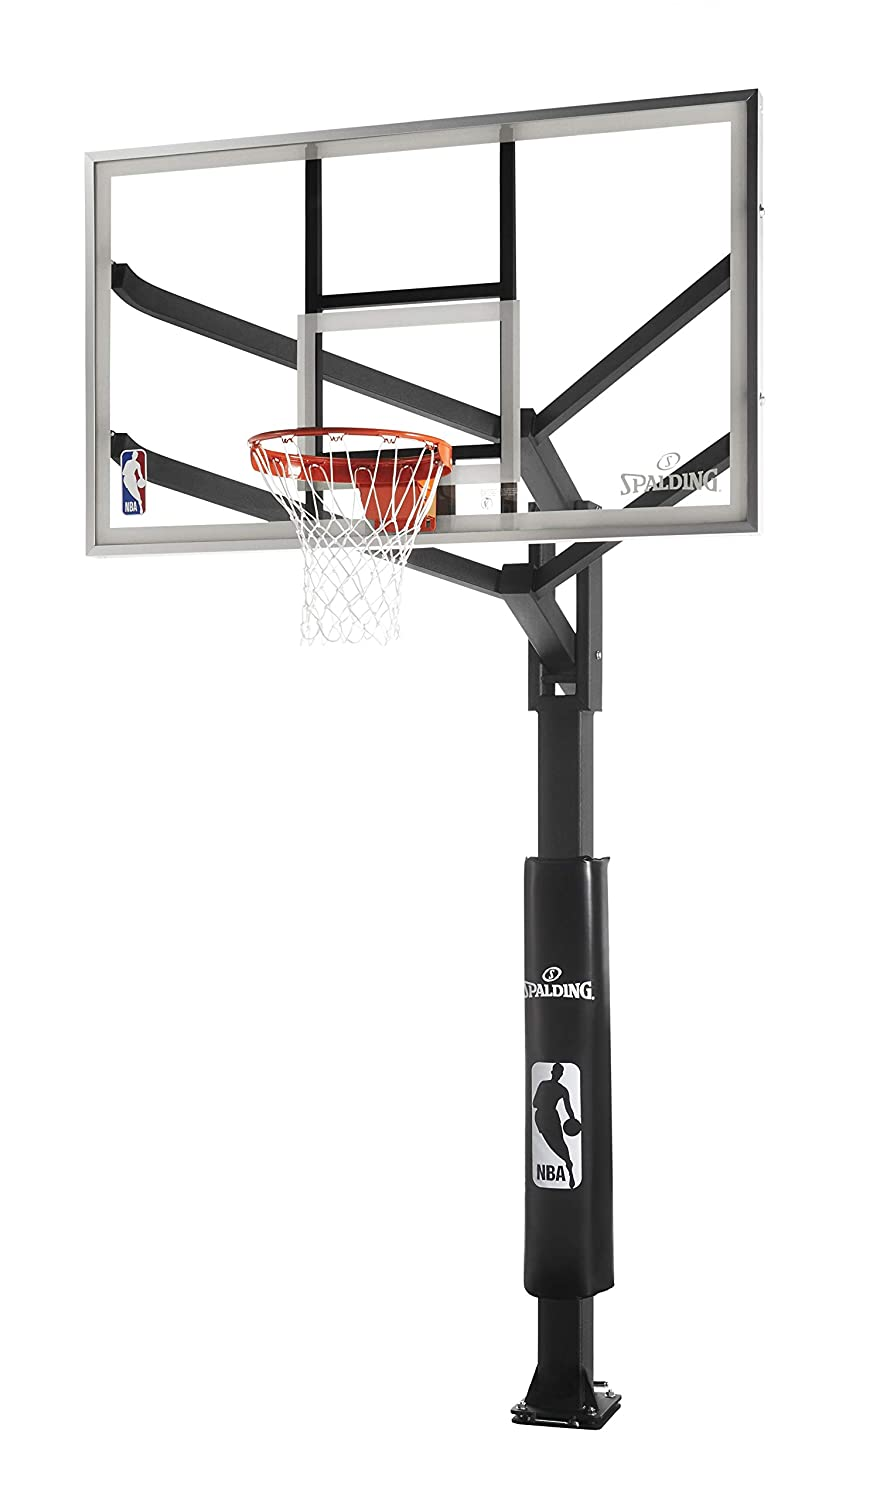 Spalding h-frame in-groundバスケットボールシステム B000Q5VUPI